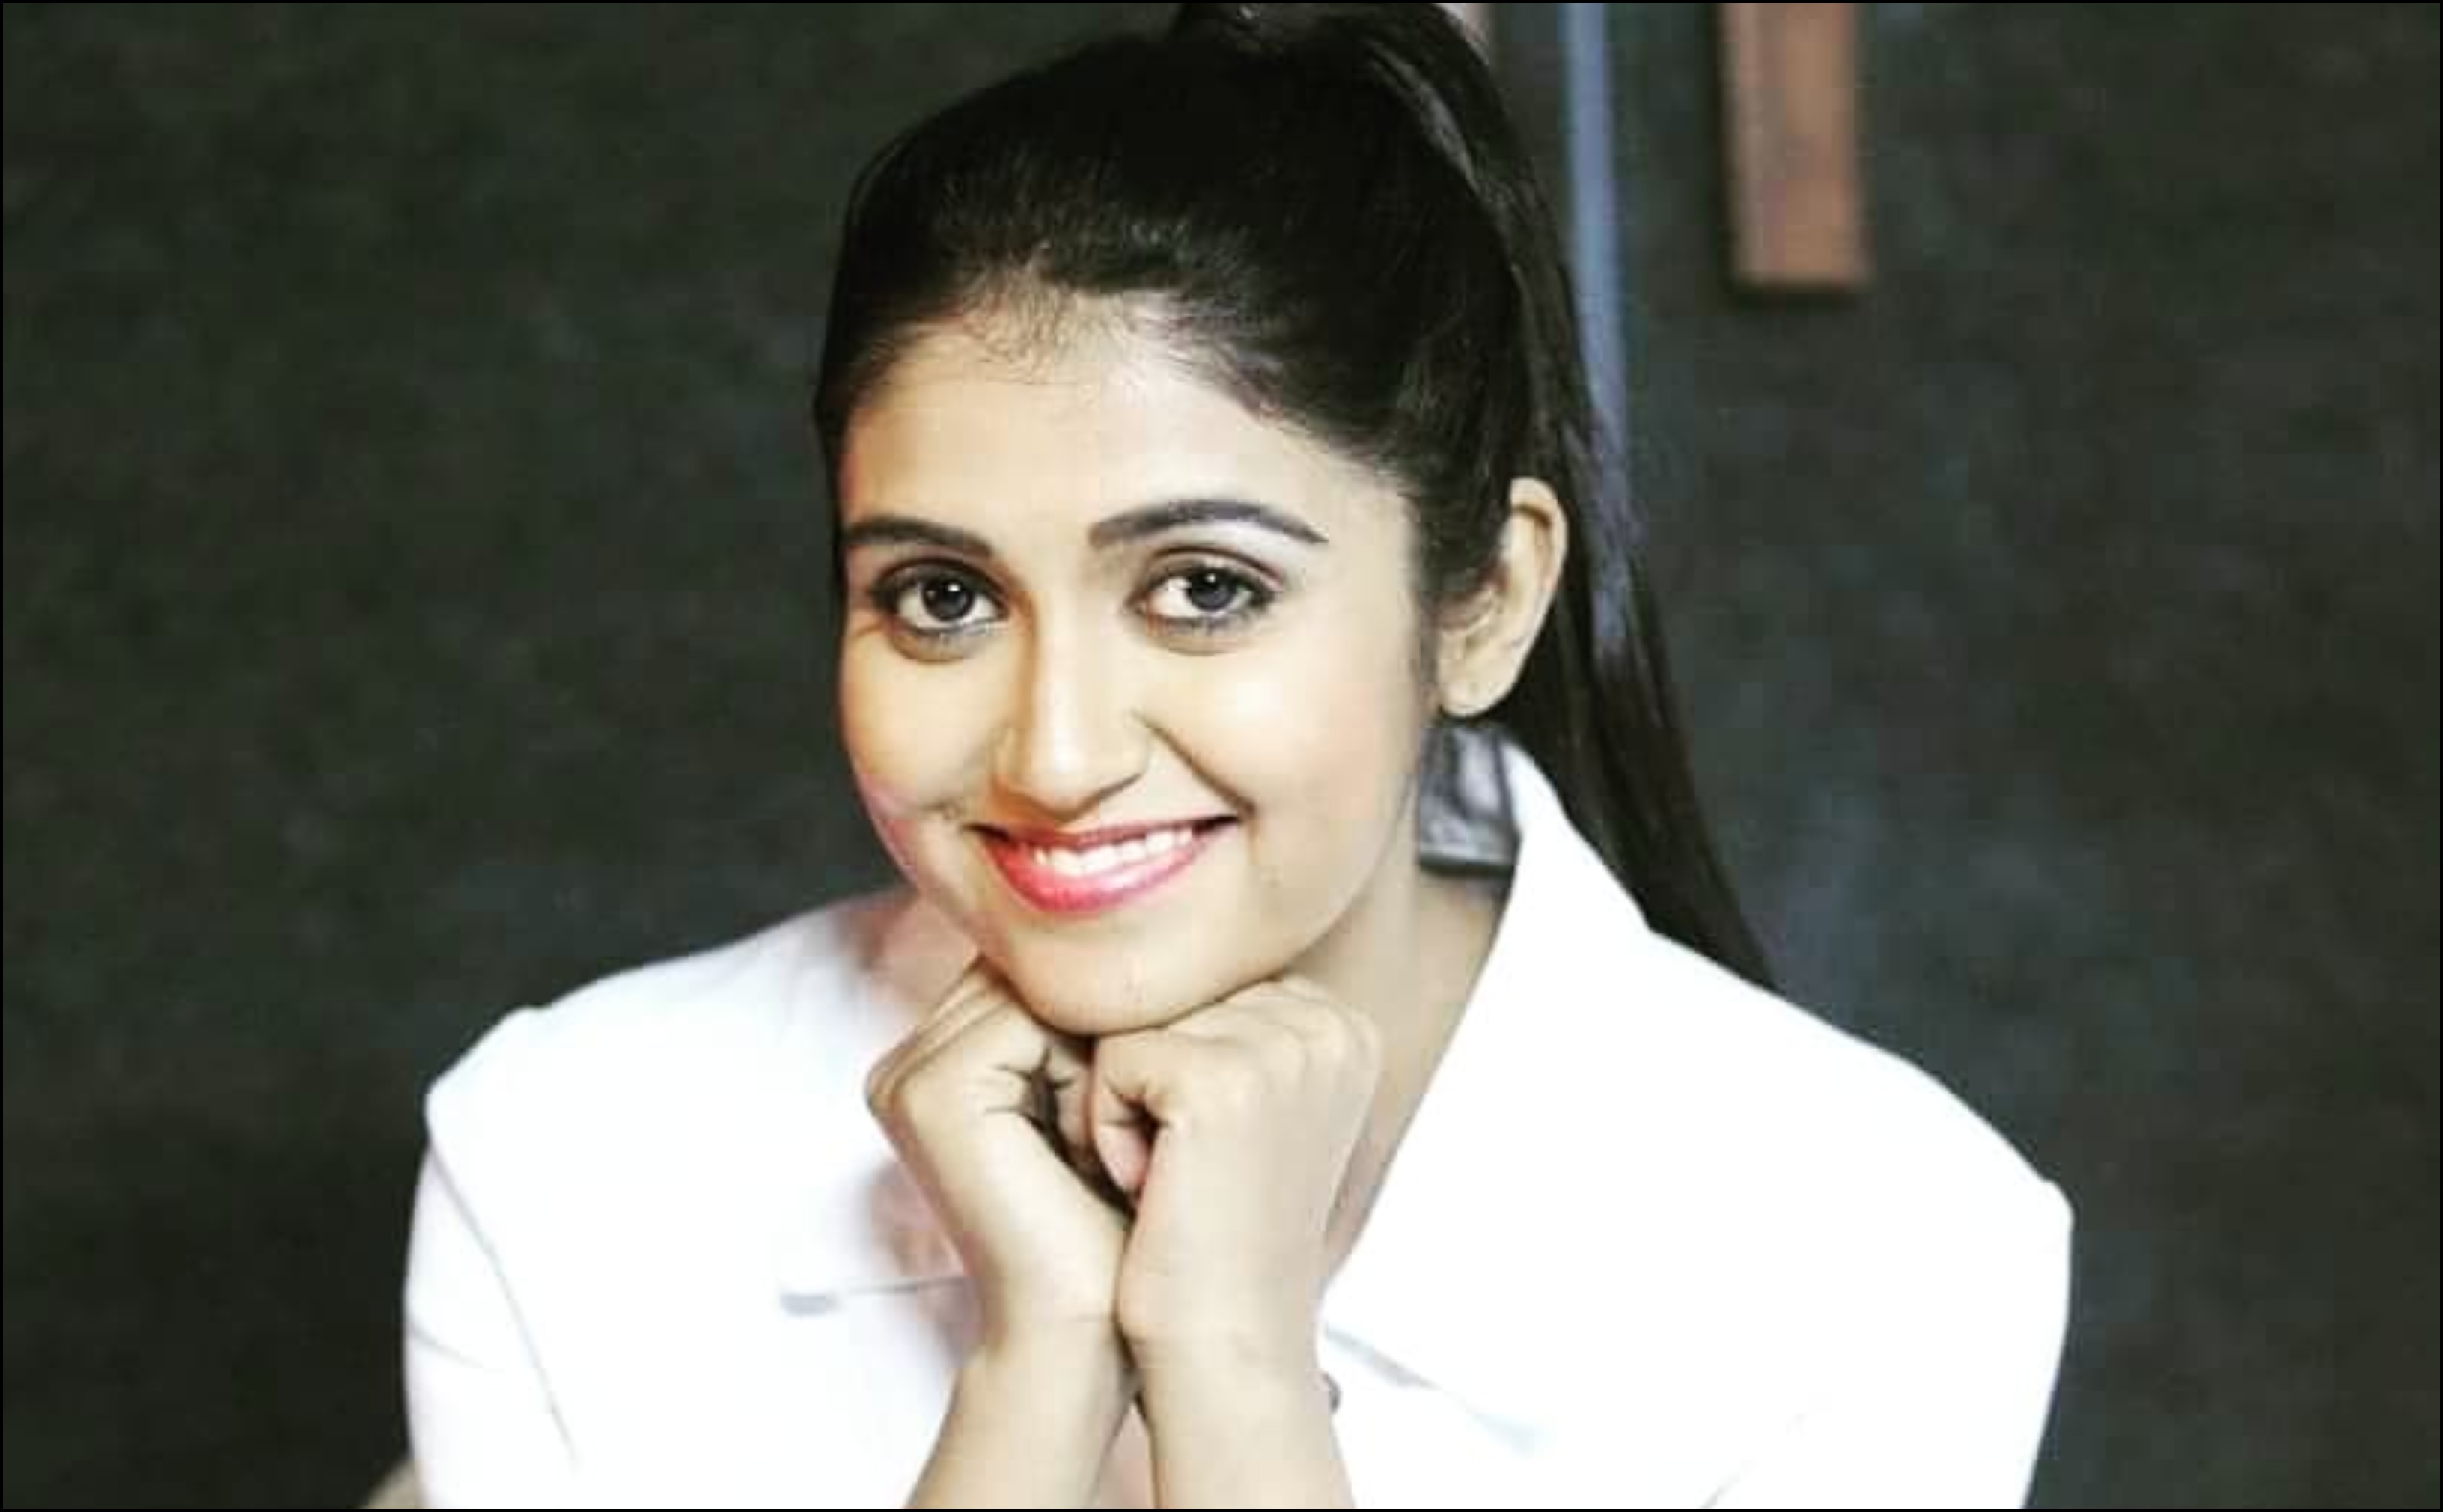 'Sairat' actress Rinku Rajguru appeared for her class 12 Maharashtra board exams, here's how much she scored!